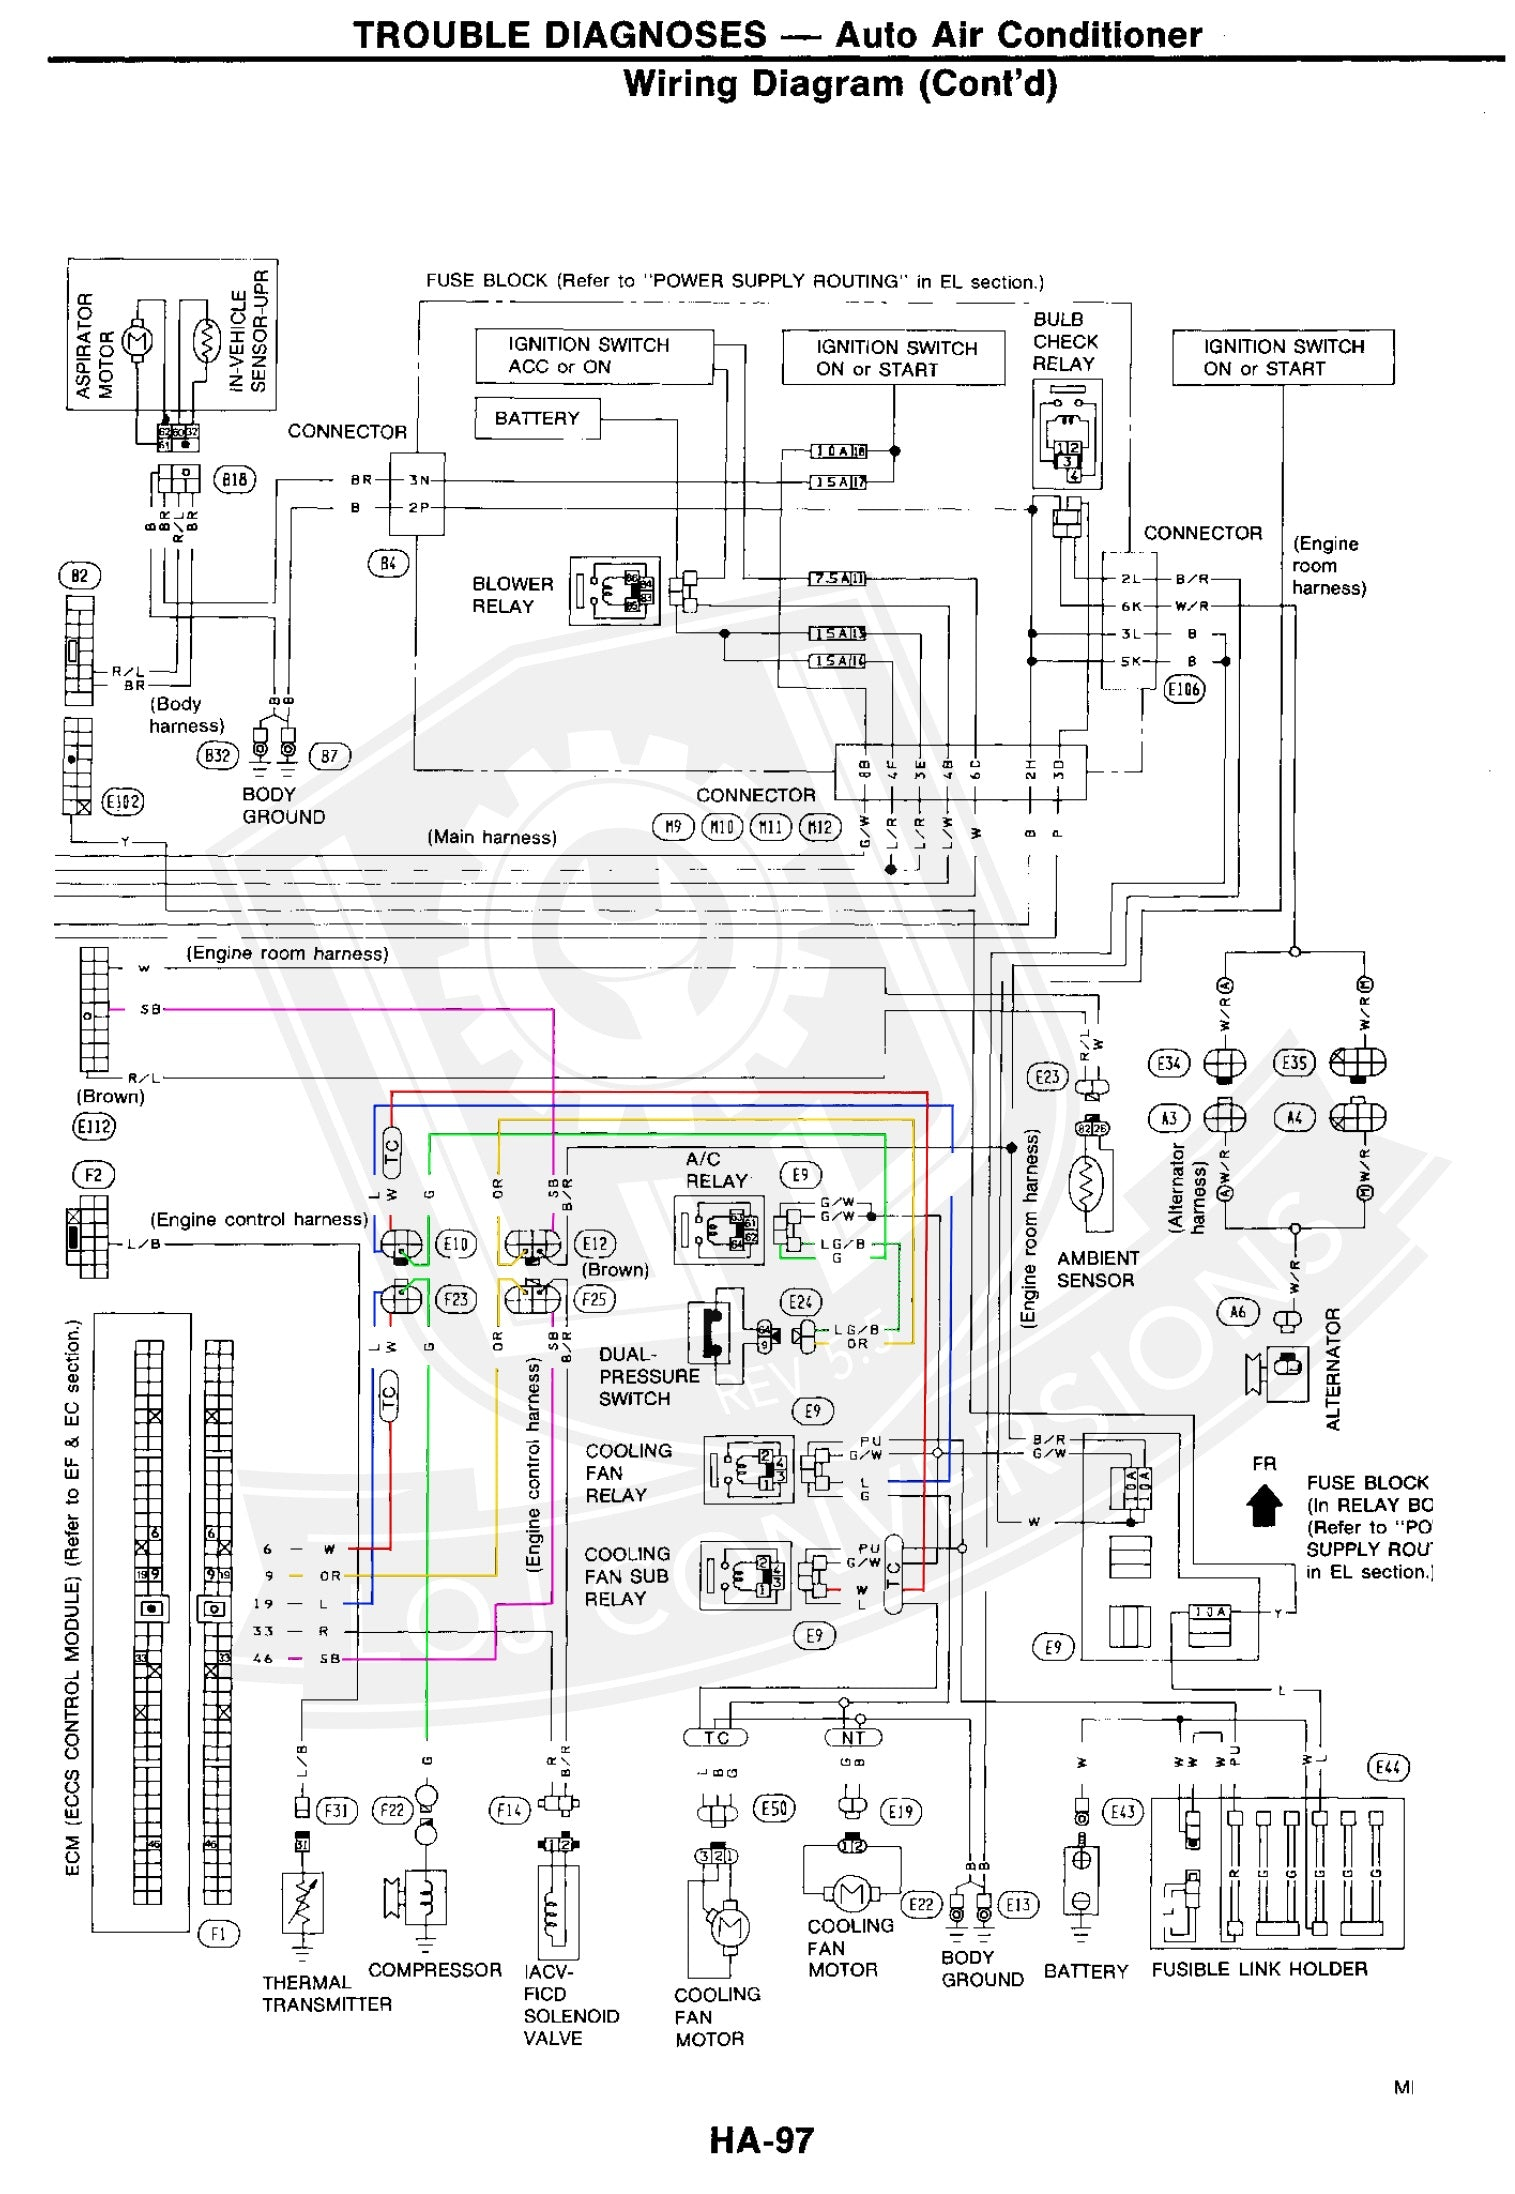 yt60 wiring diagram wiring diagramz32 wiring diagram wiring diagram detailedwiring the ac in a 300zx engine conversion loj conversions z32